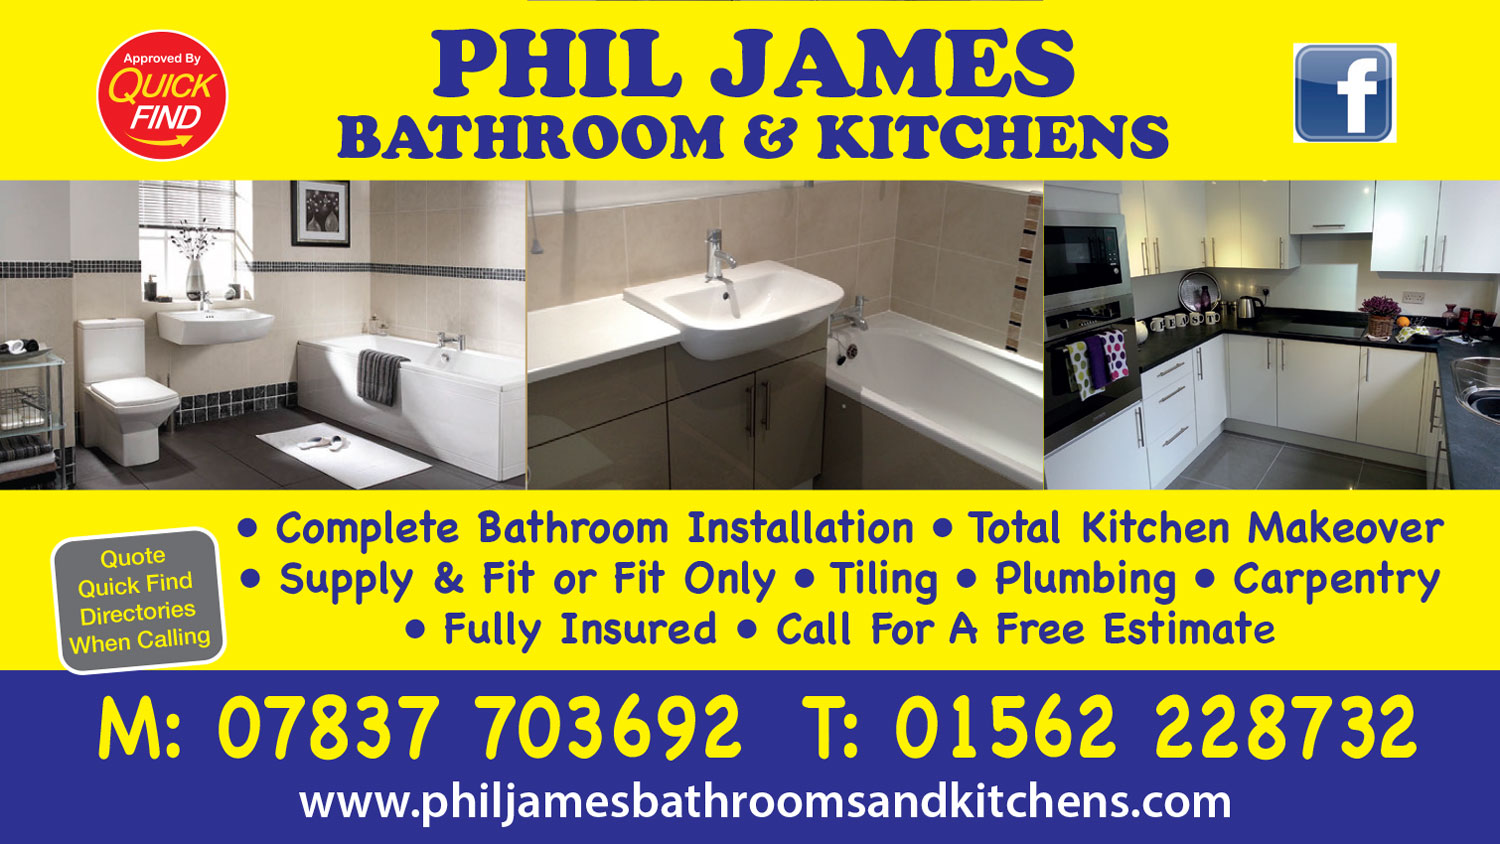 Phil James Bathroom and Kitchens